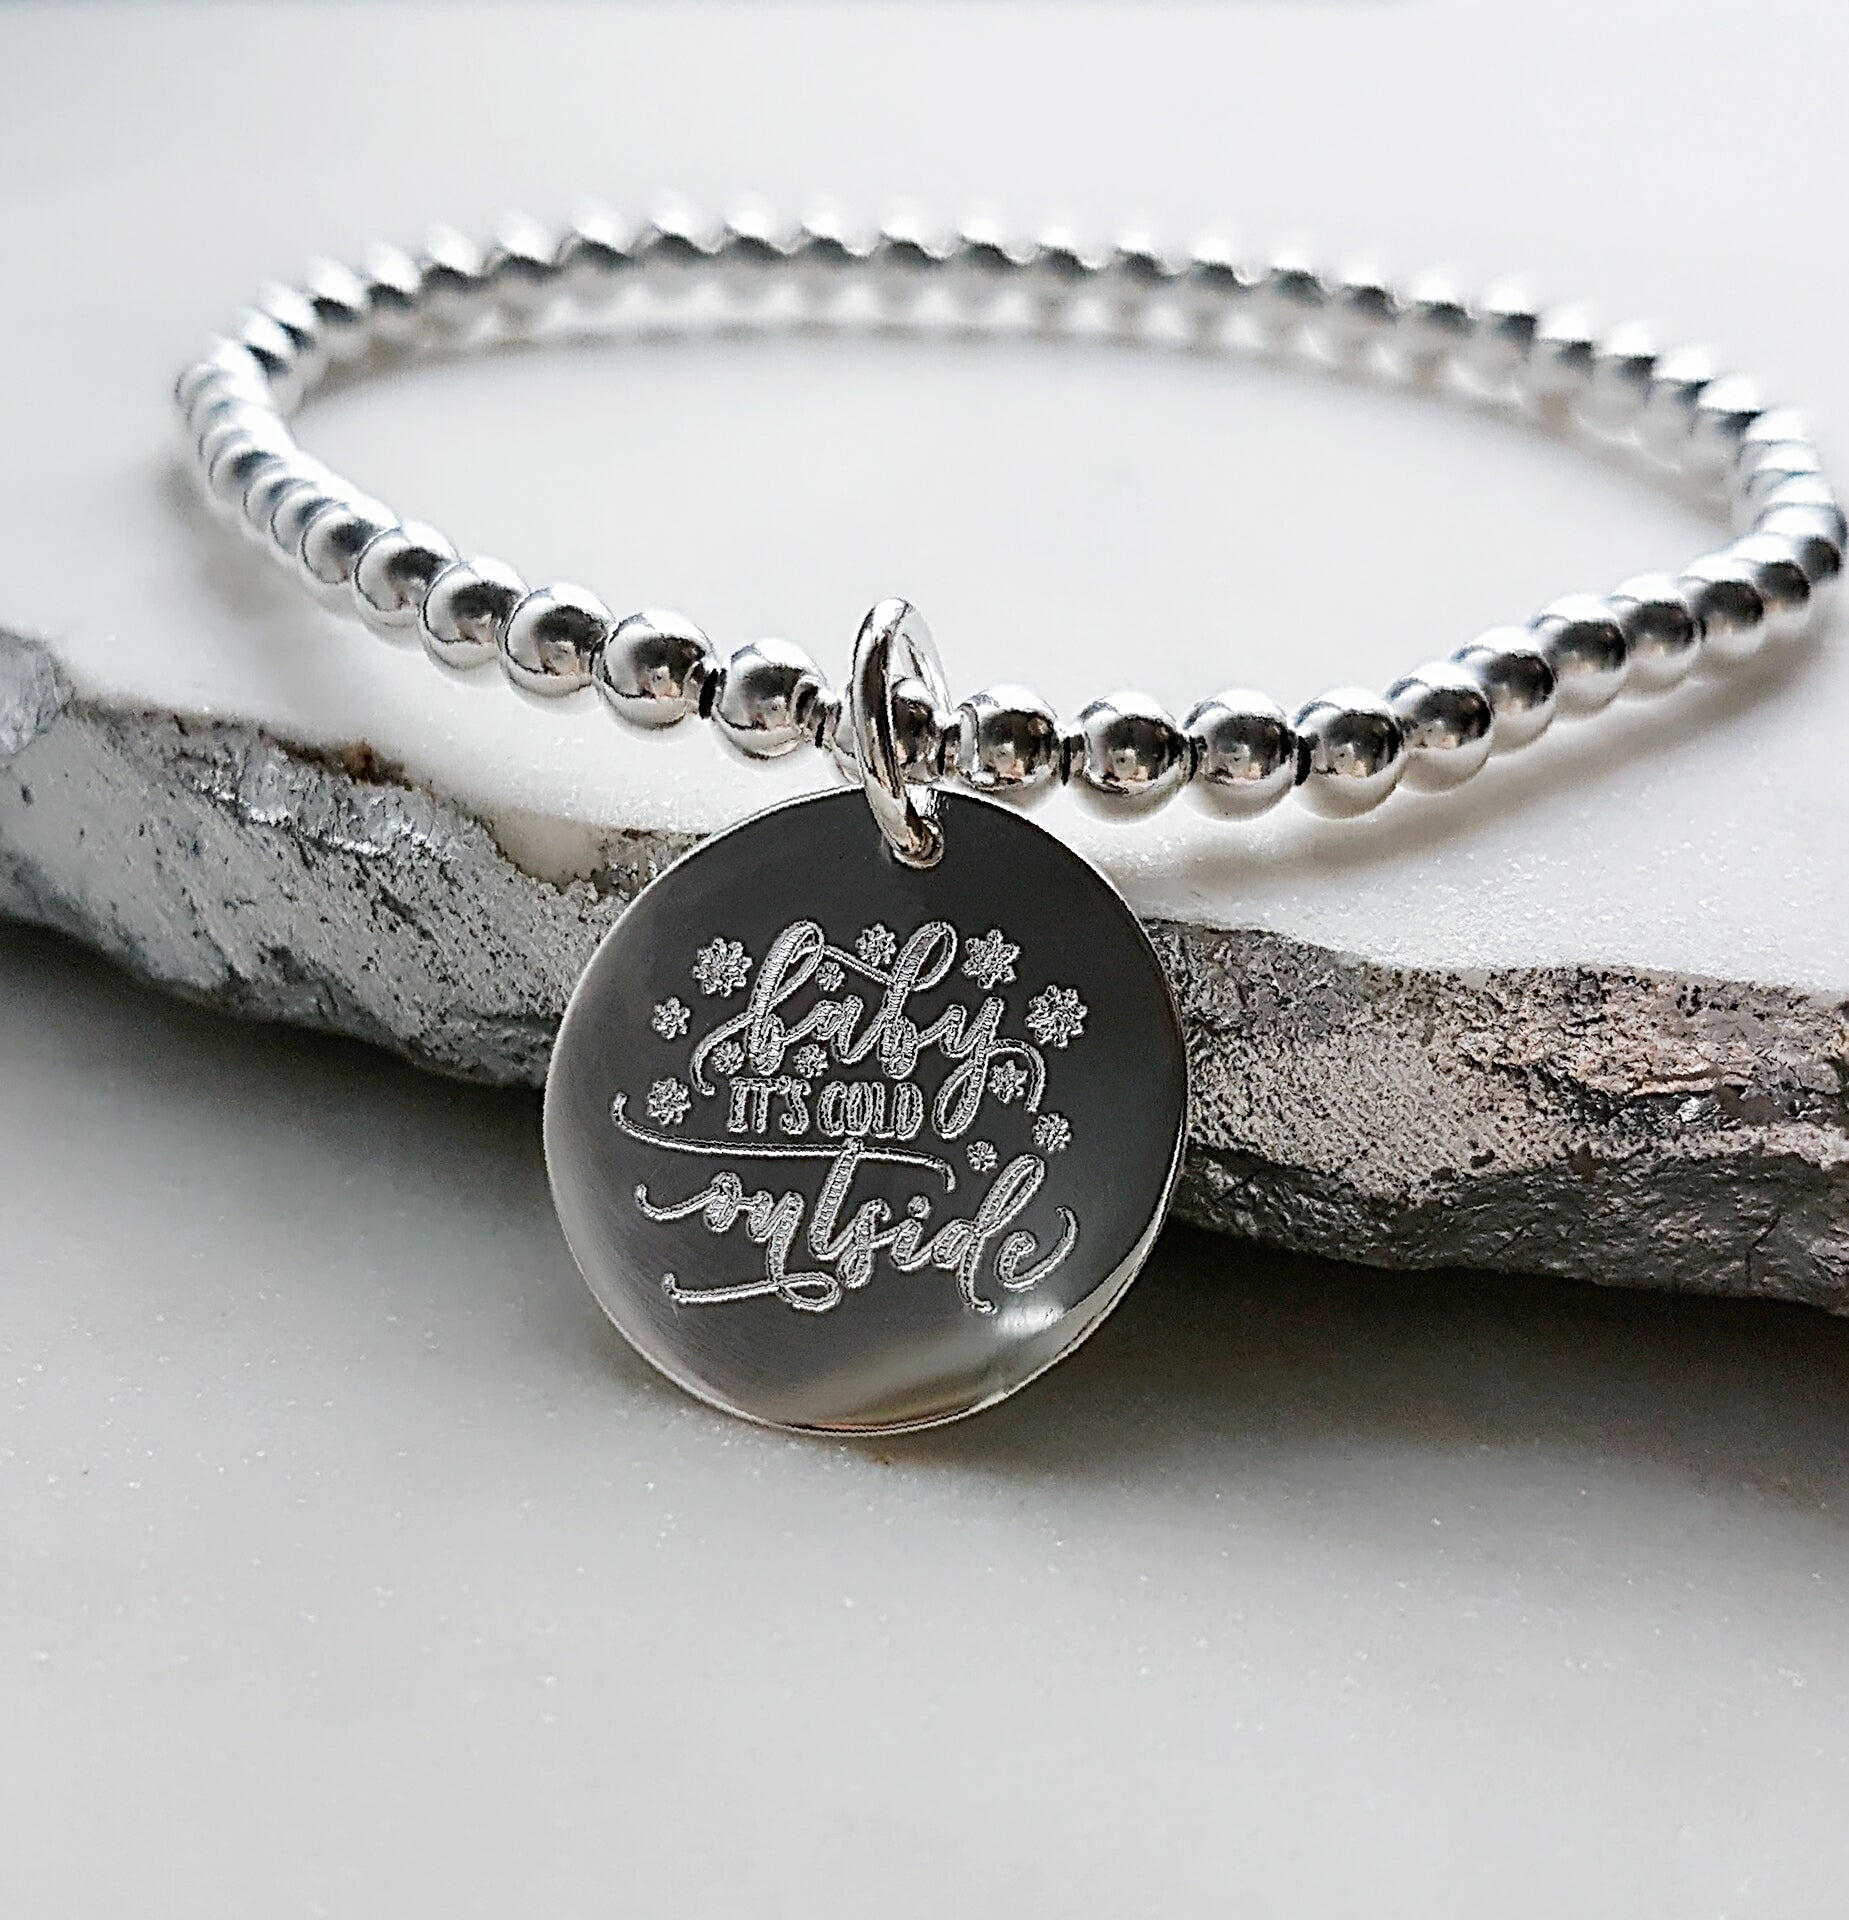 c9ecbe7a520  Holiday Exclusive  Sterling Silver Baby it s cold outside Bracelet - Jewelz  by Angie